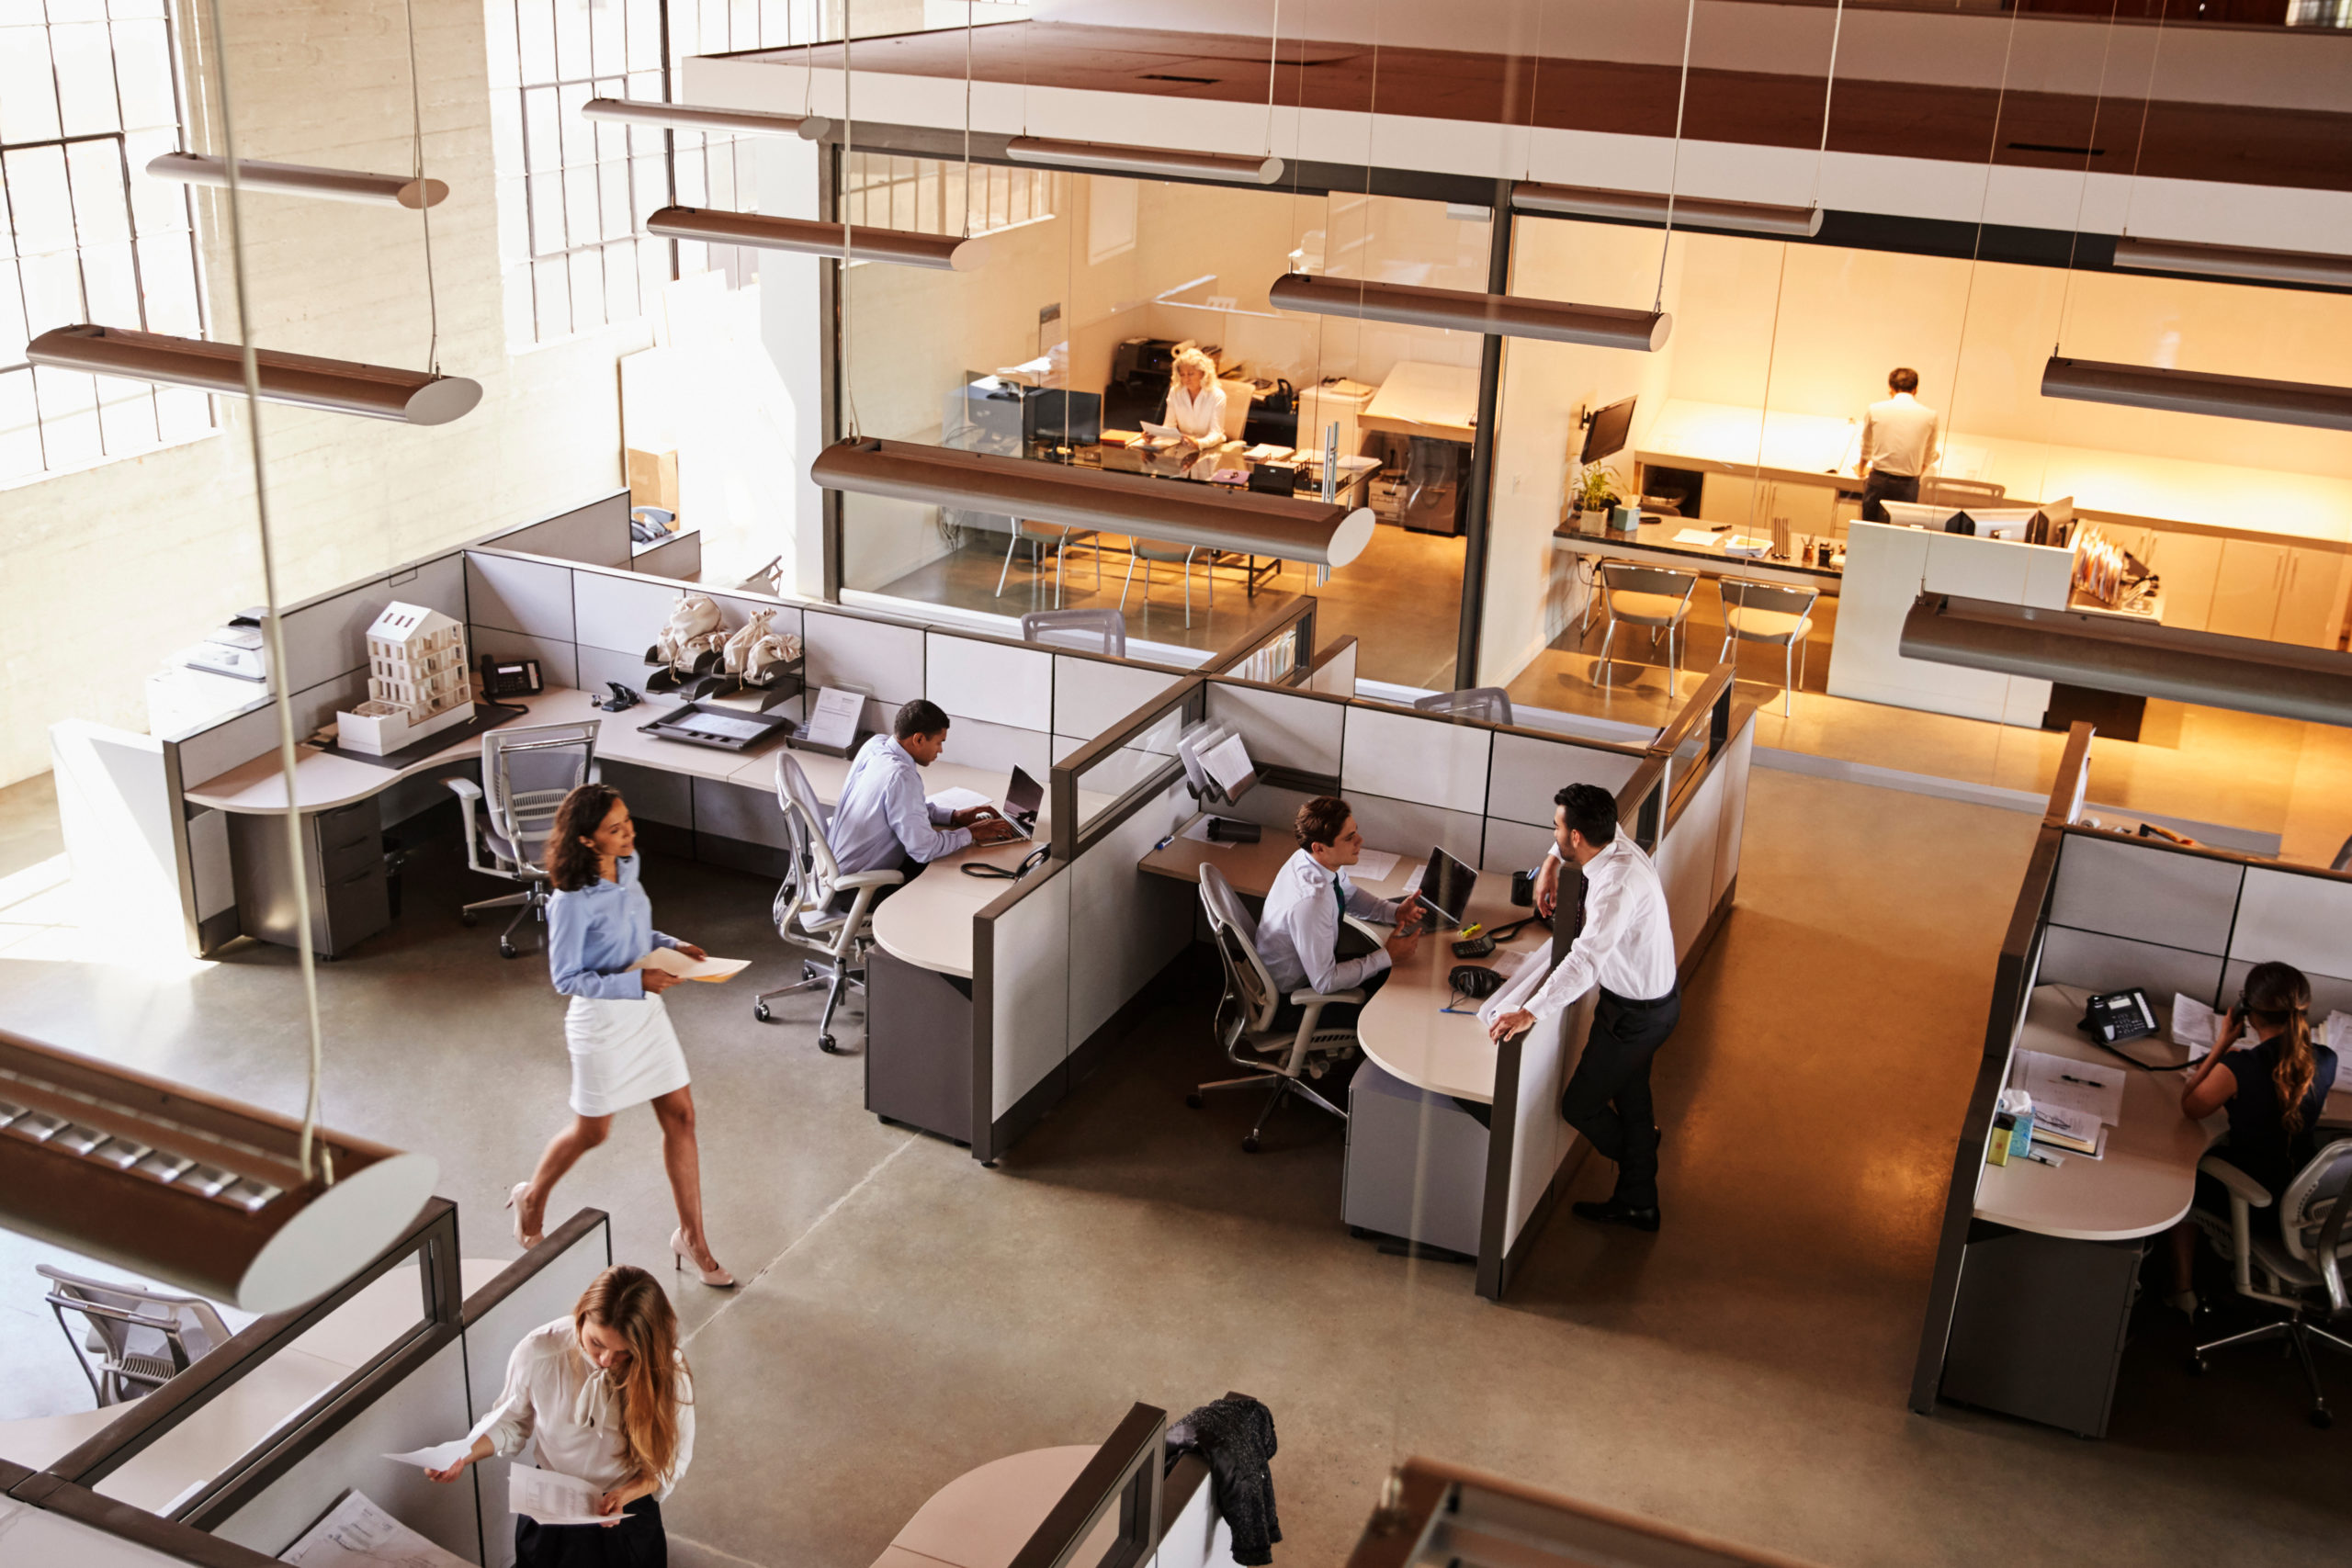 5 Reasons to Relocate or Refurbish Your Office Following COVID-19